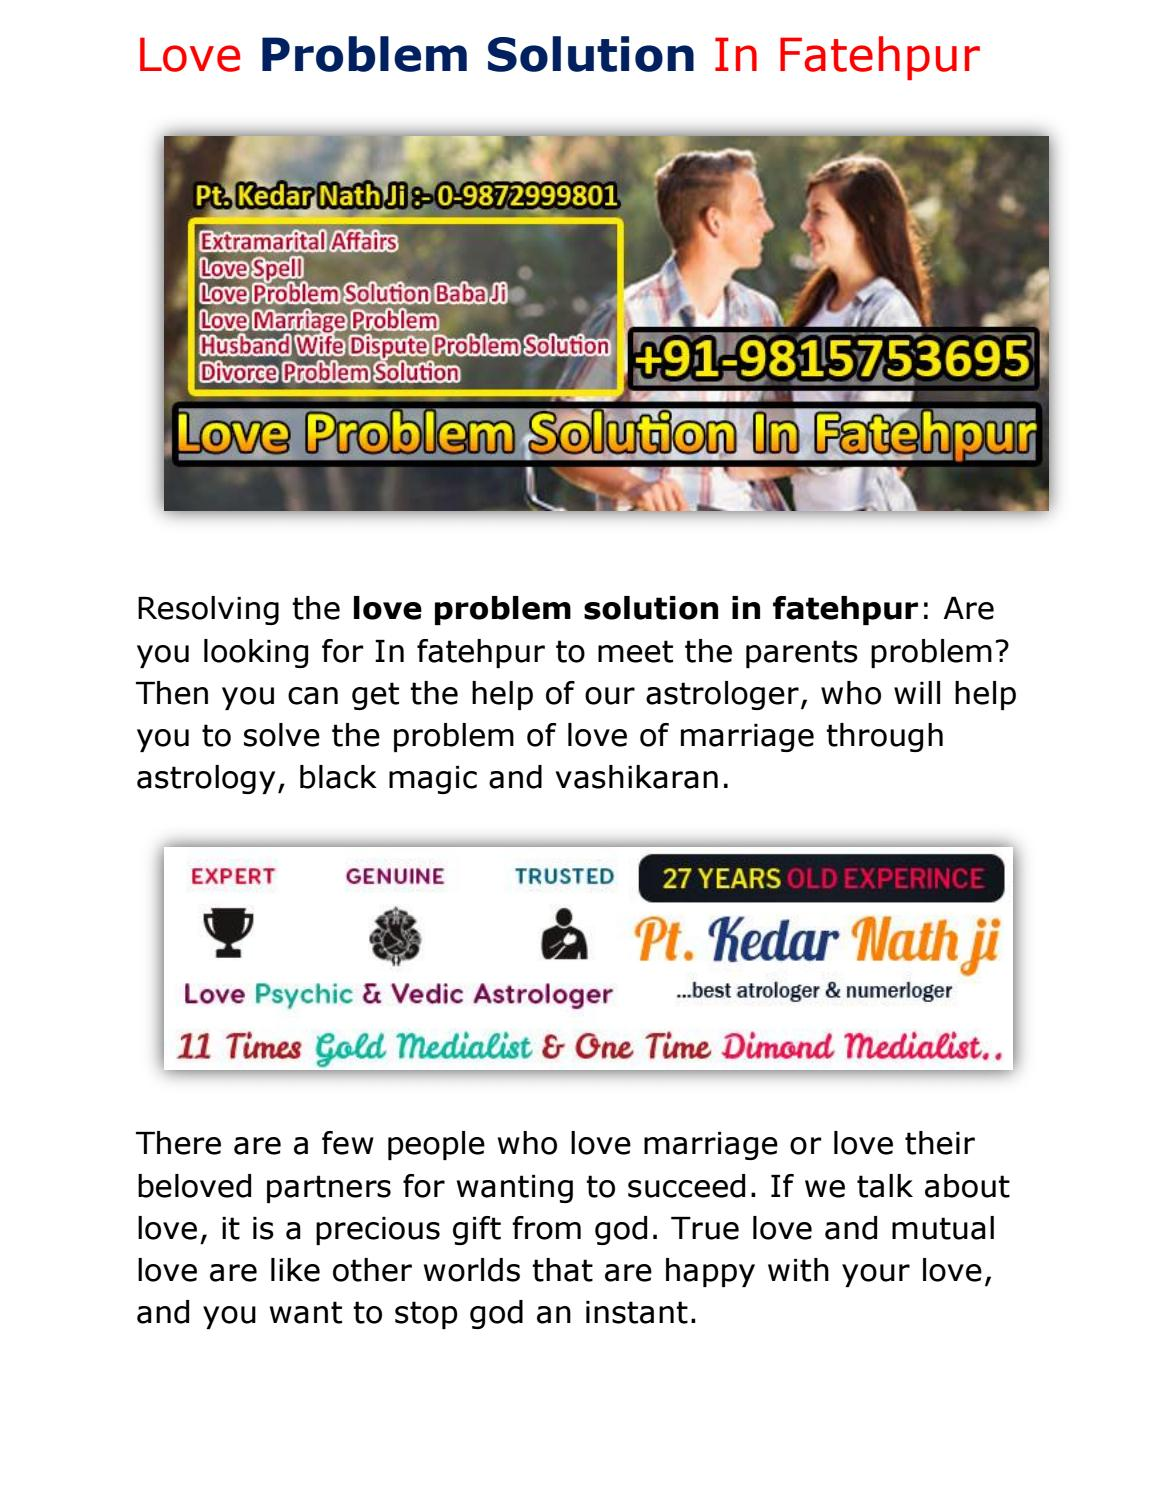 Love Problem Solution In Fatehpur - +91-9815753695, 0